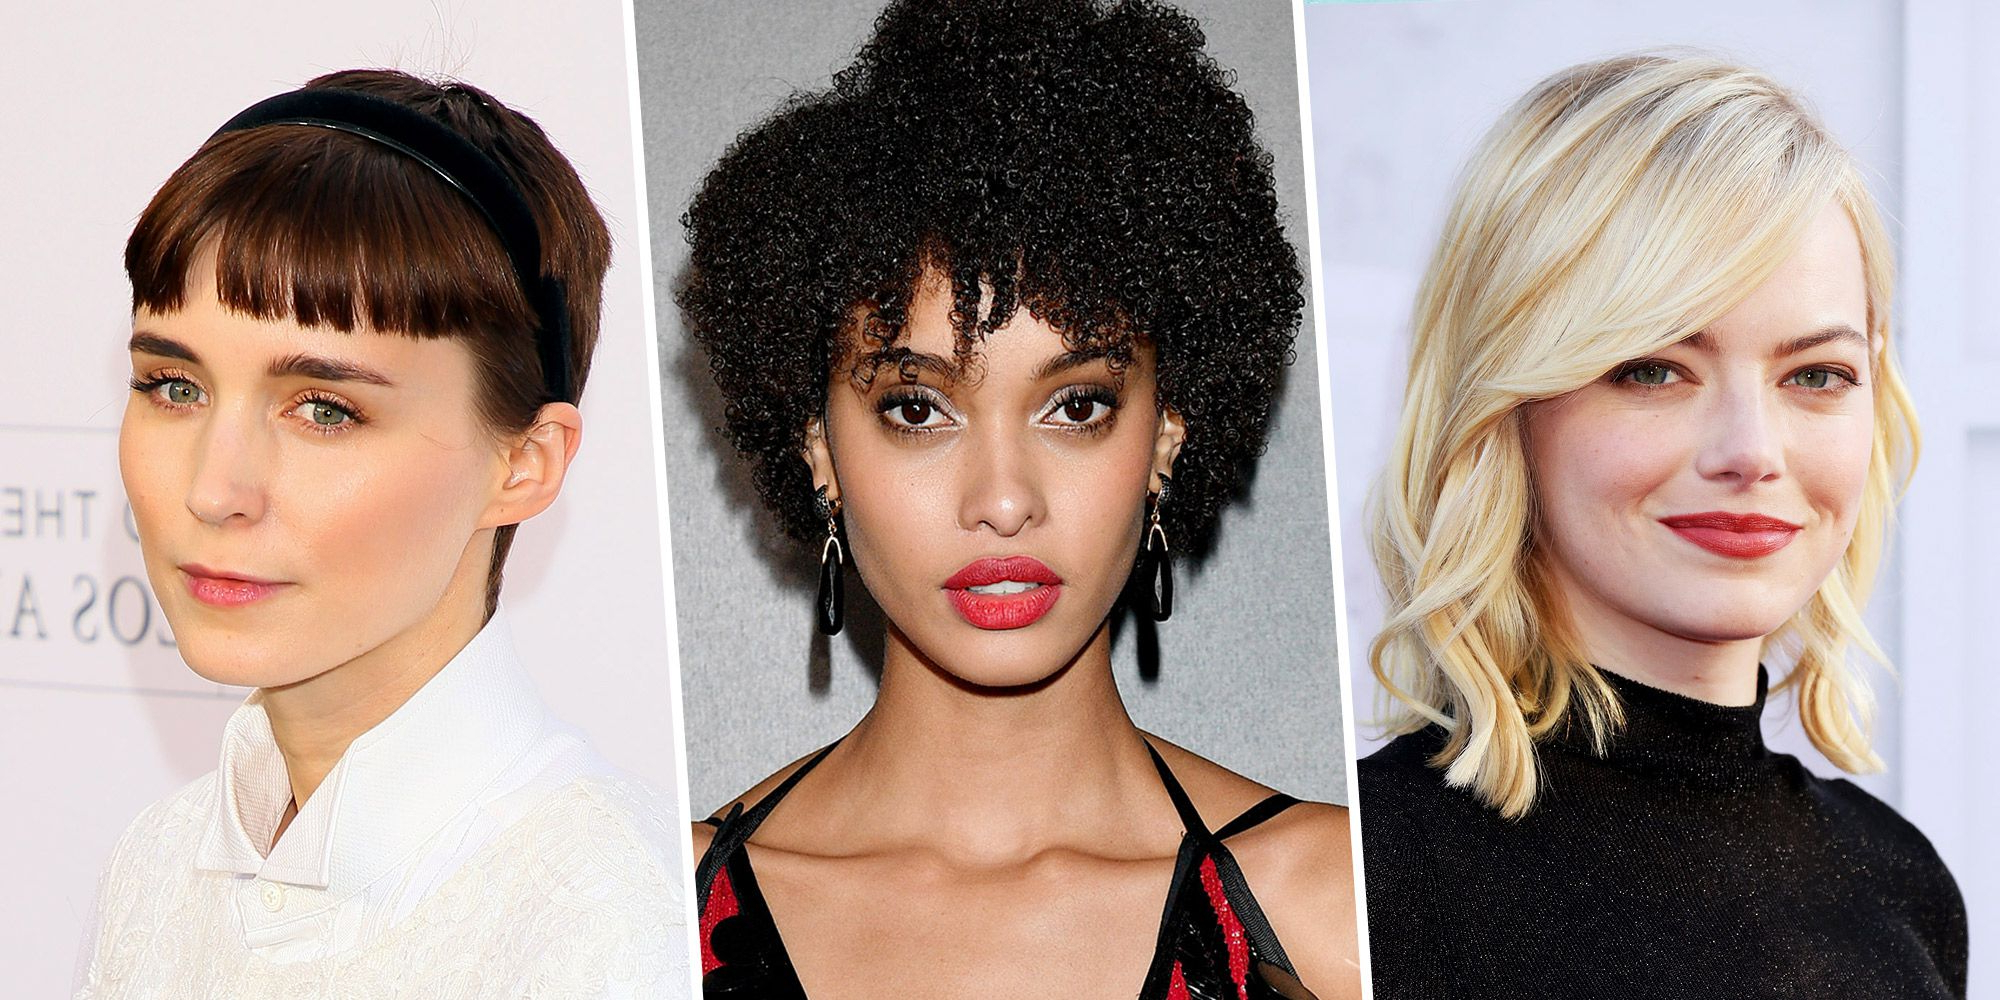 65 Best Short Hairstyles, Haircuts, And Short Hair Ideas For 2018 Within Short Haircuts For Voluminous Hair (Gallery 23 of 25)